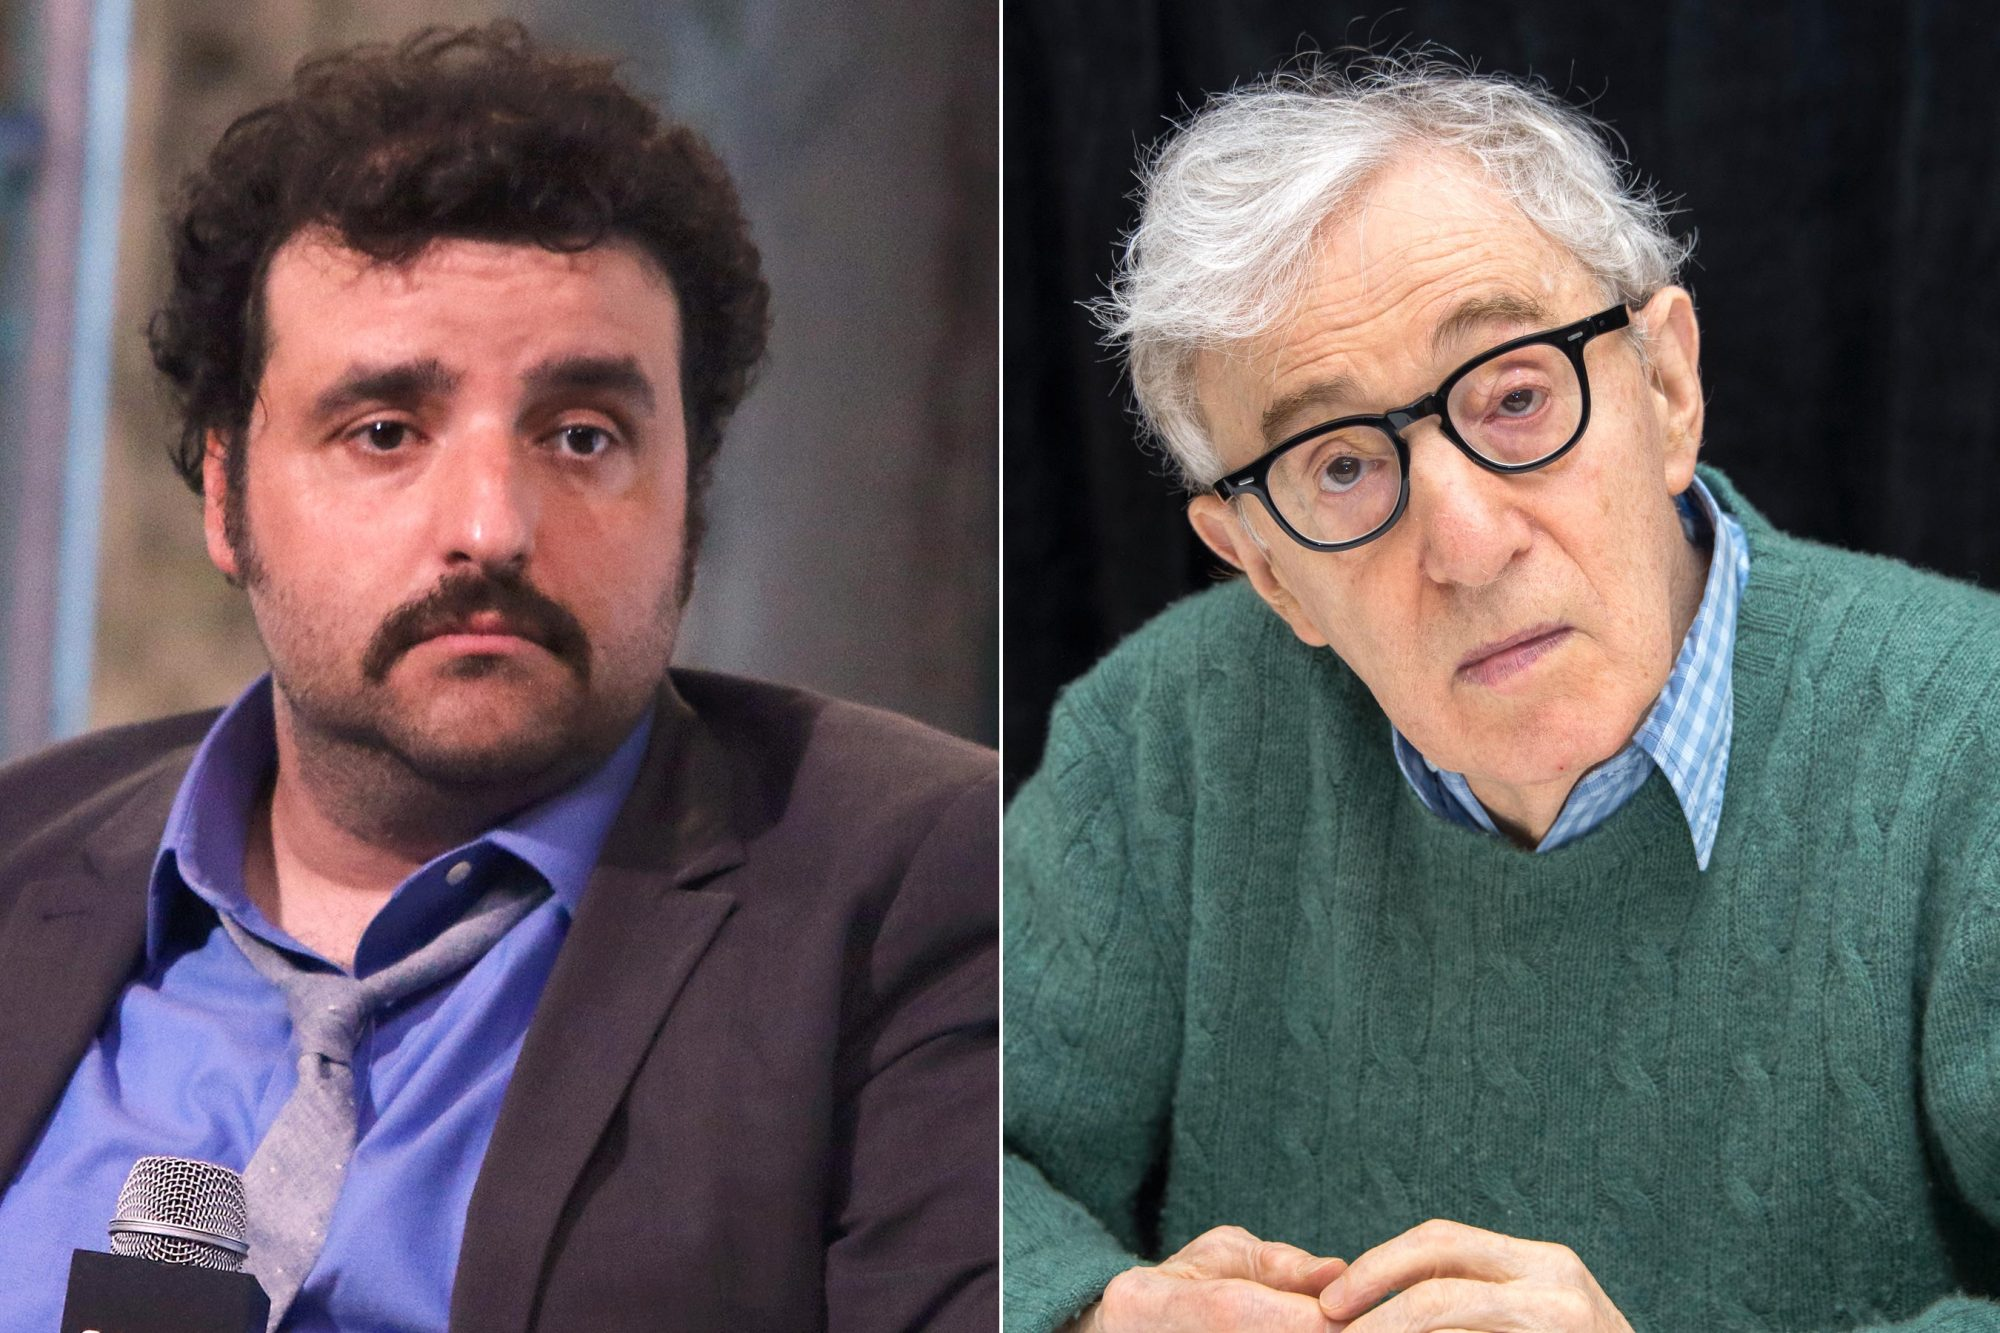 David-Krumholtz-Woody-Allen